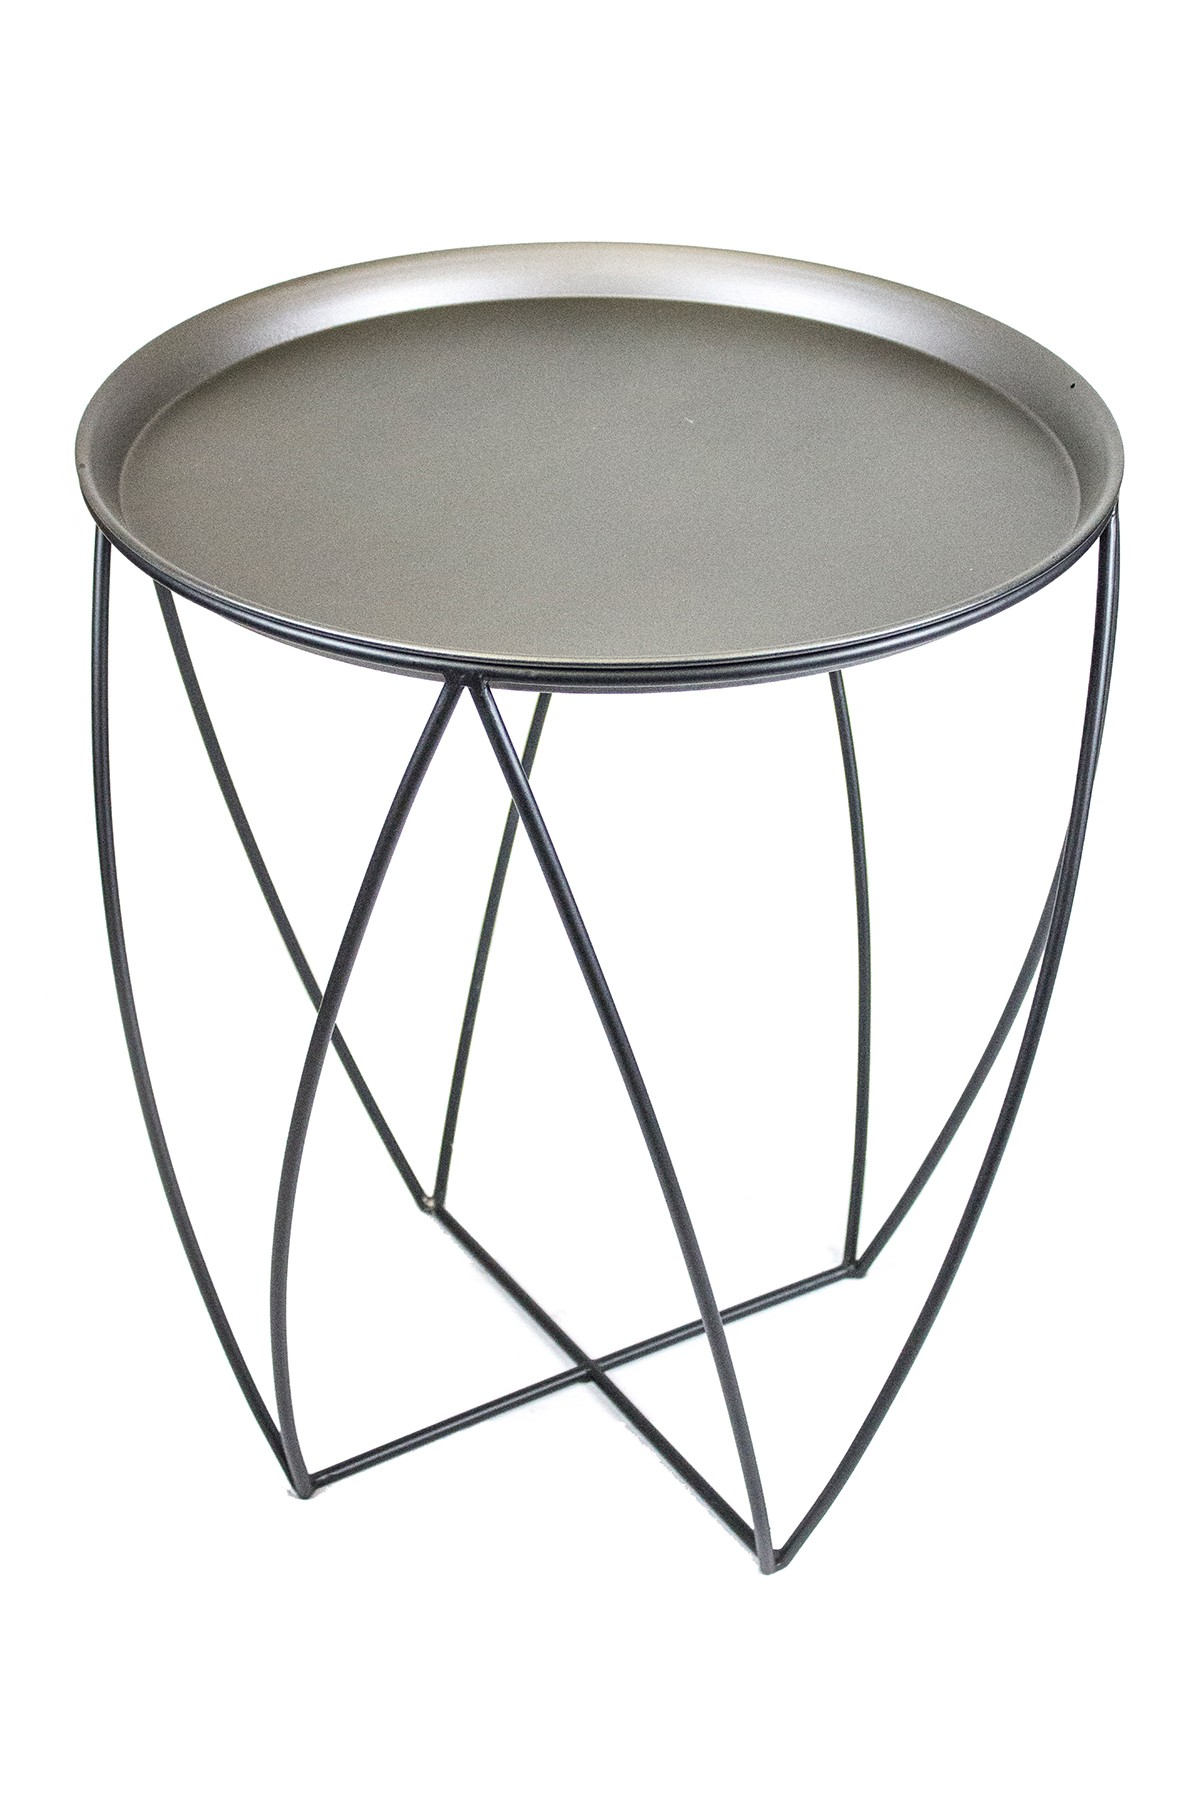 sagebrook home silver metal accent table nordstrom rack marble wood coffee black modern side square patio valley city furniture outdoor gold coast glass top sofa mahogany teak end